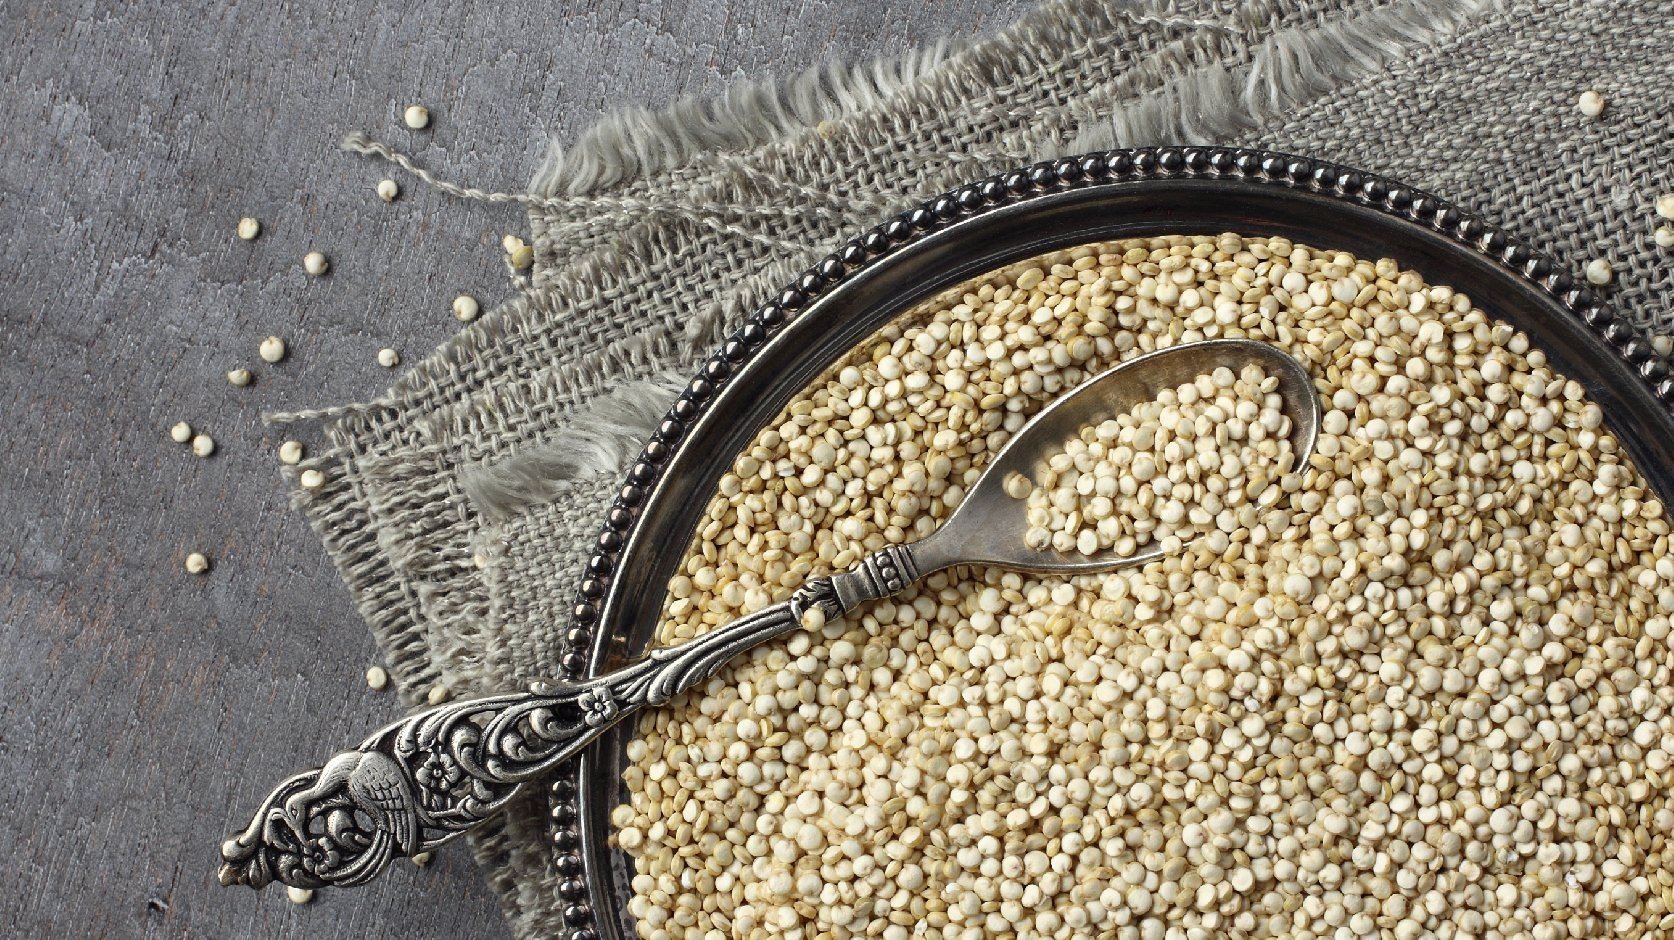 Factories that got the all-clear now produce quinoa that will bear the OU-P symbol, meaning they're kosher for Passover. Photo: Iryna Melnyk/iStockphoto